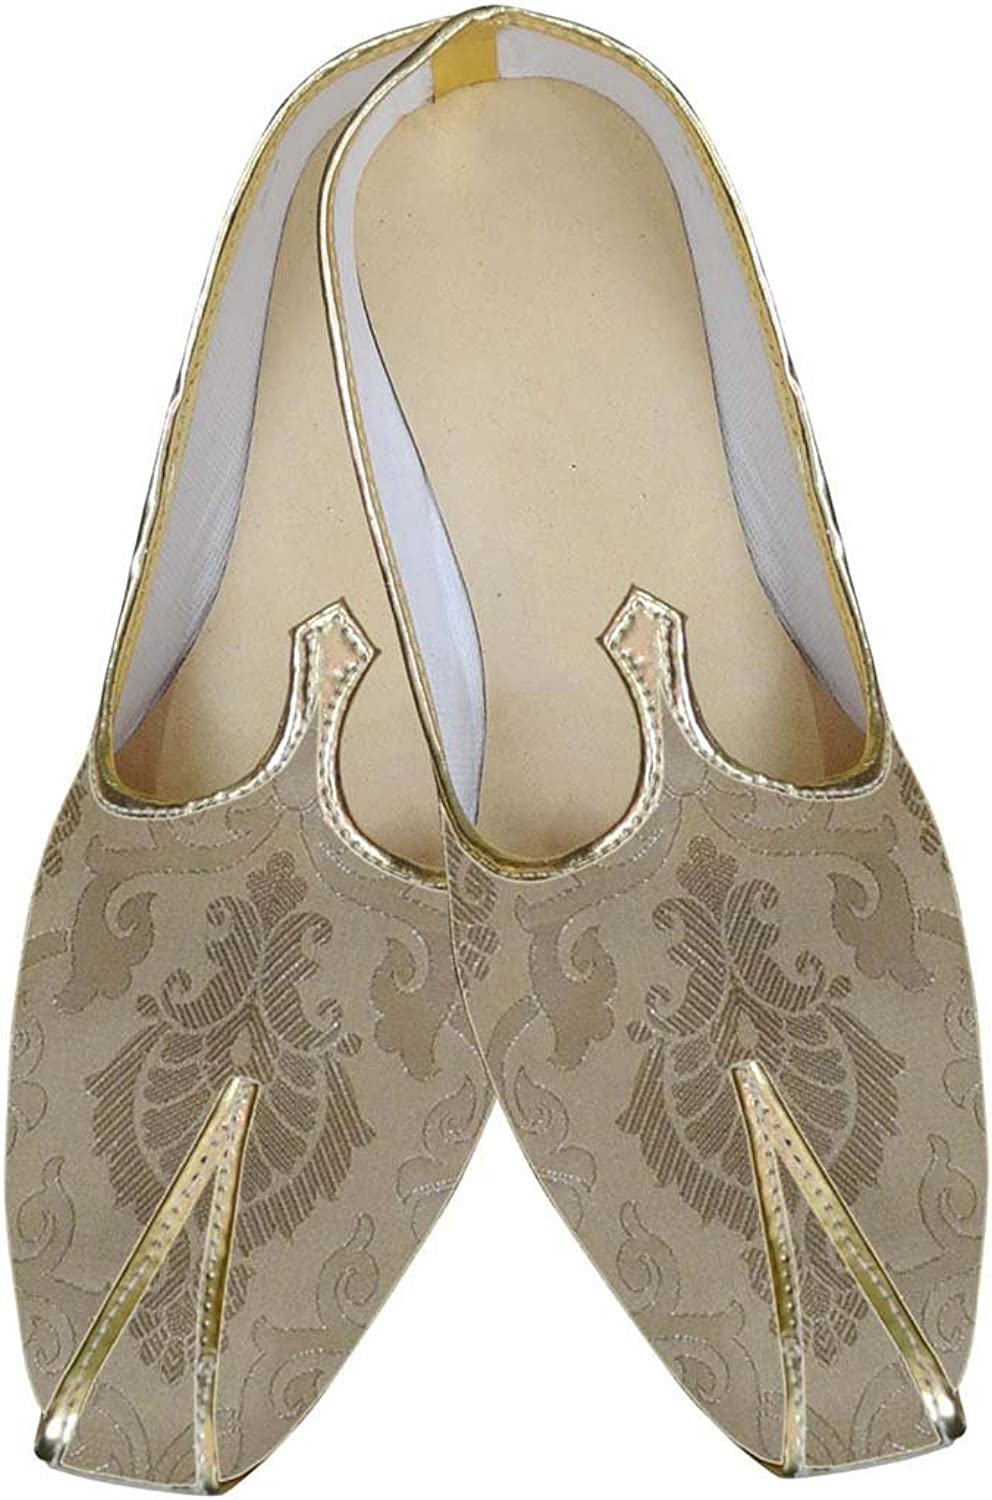 INMONARCH Mens Cream Ivory Brocade Two Tone Wedding shoes MJ0067